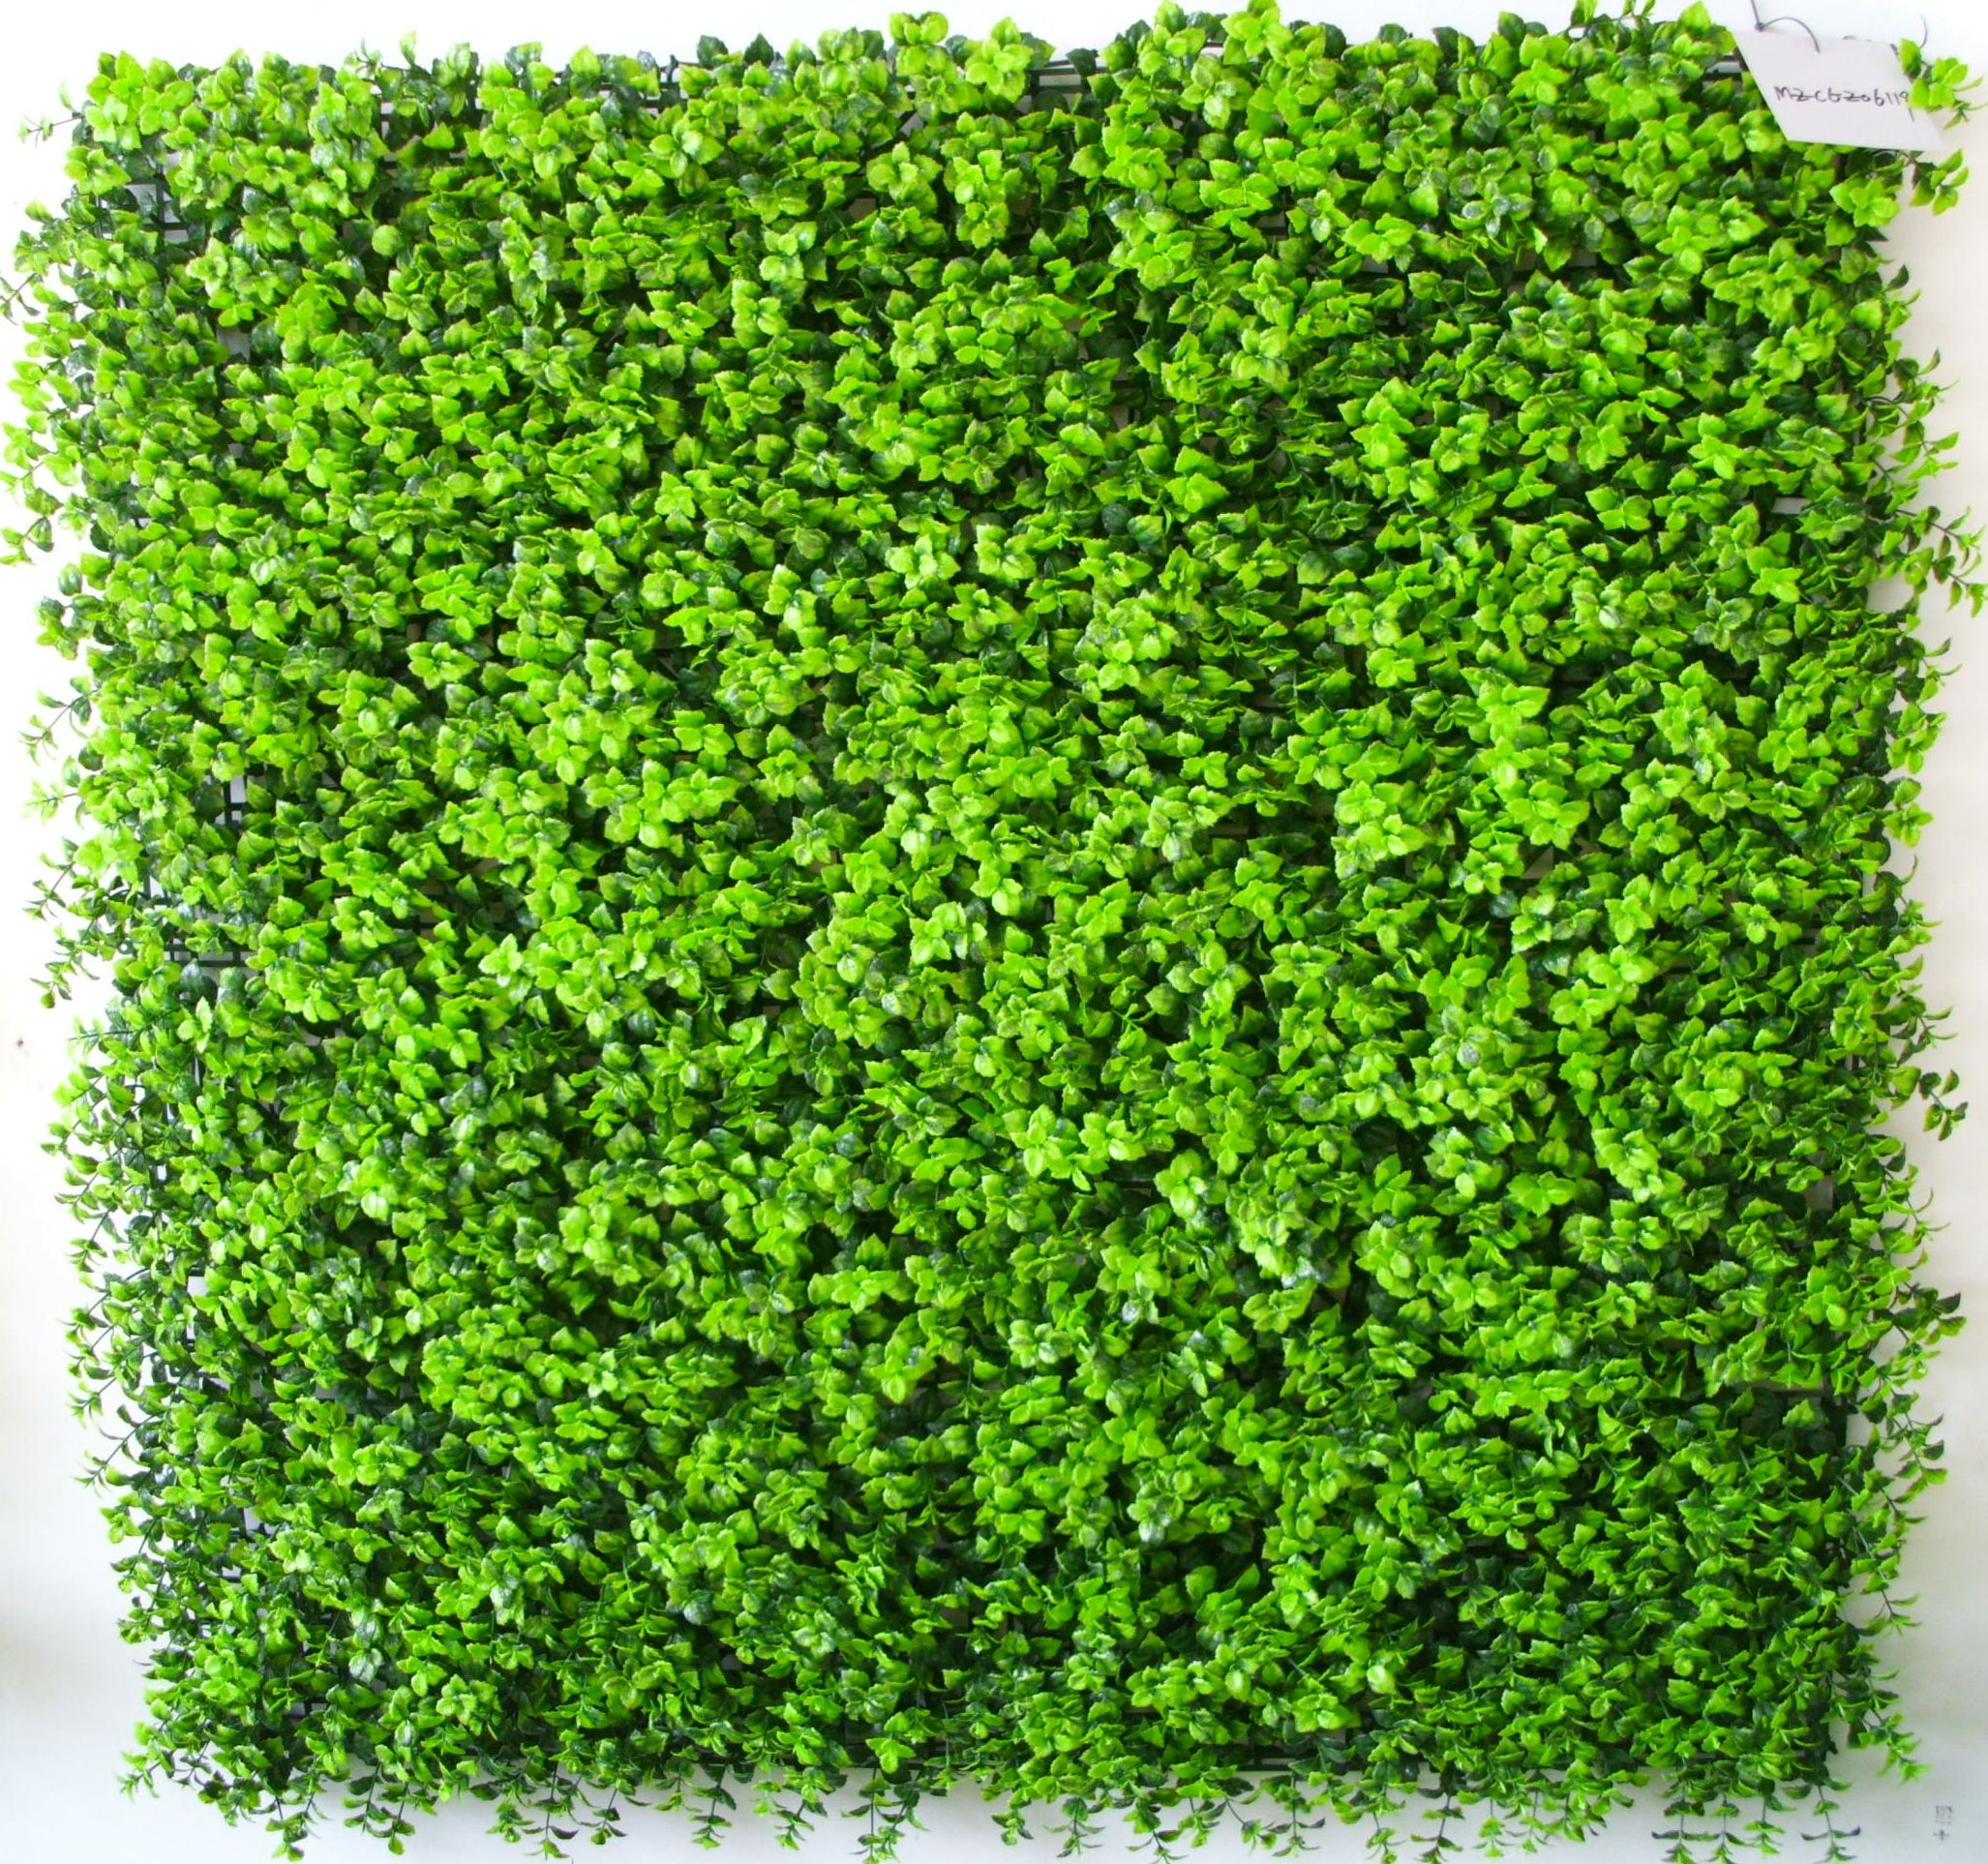 Artificial Garden Wall MZ188004 Artificial Ivy Screen Privacy Leaf Fence With Willow Trellis For Garden And Wall